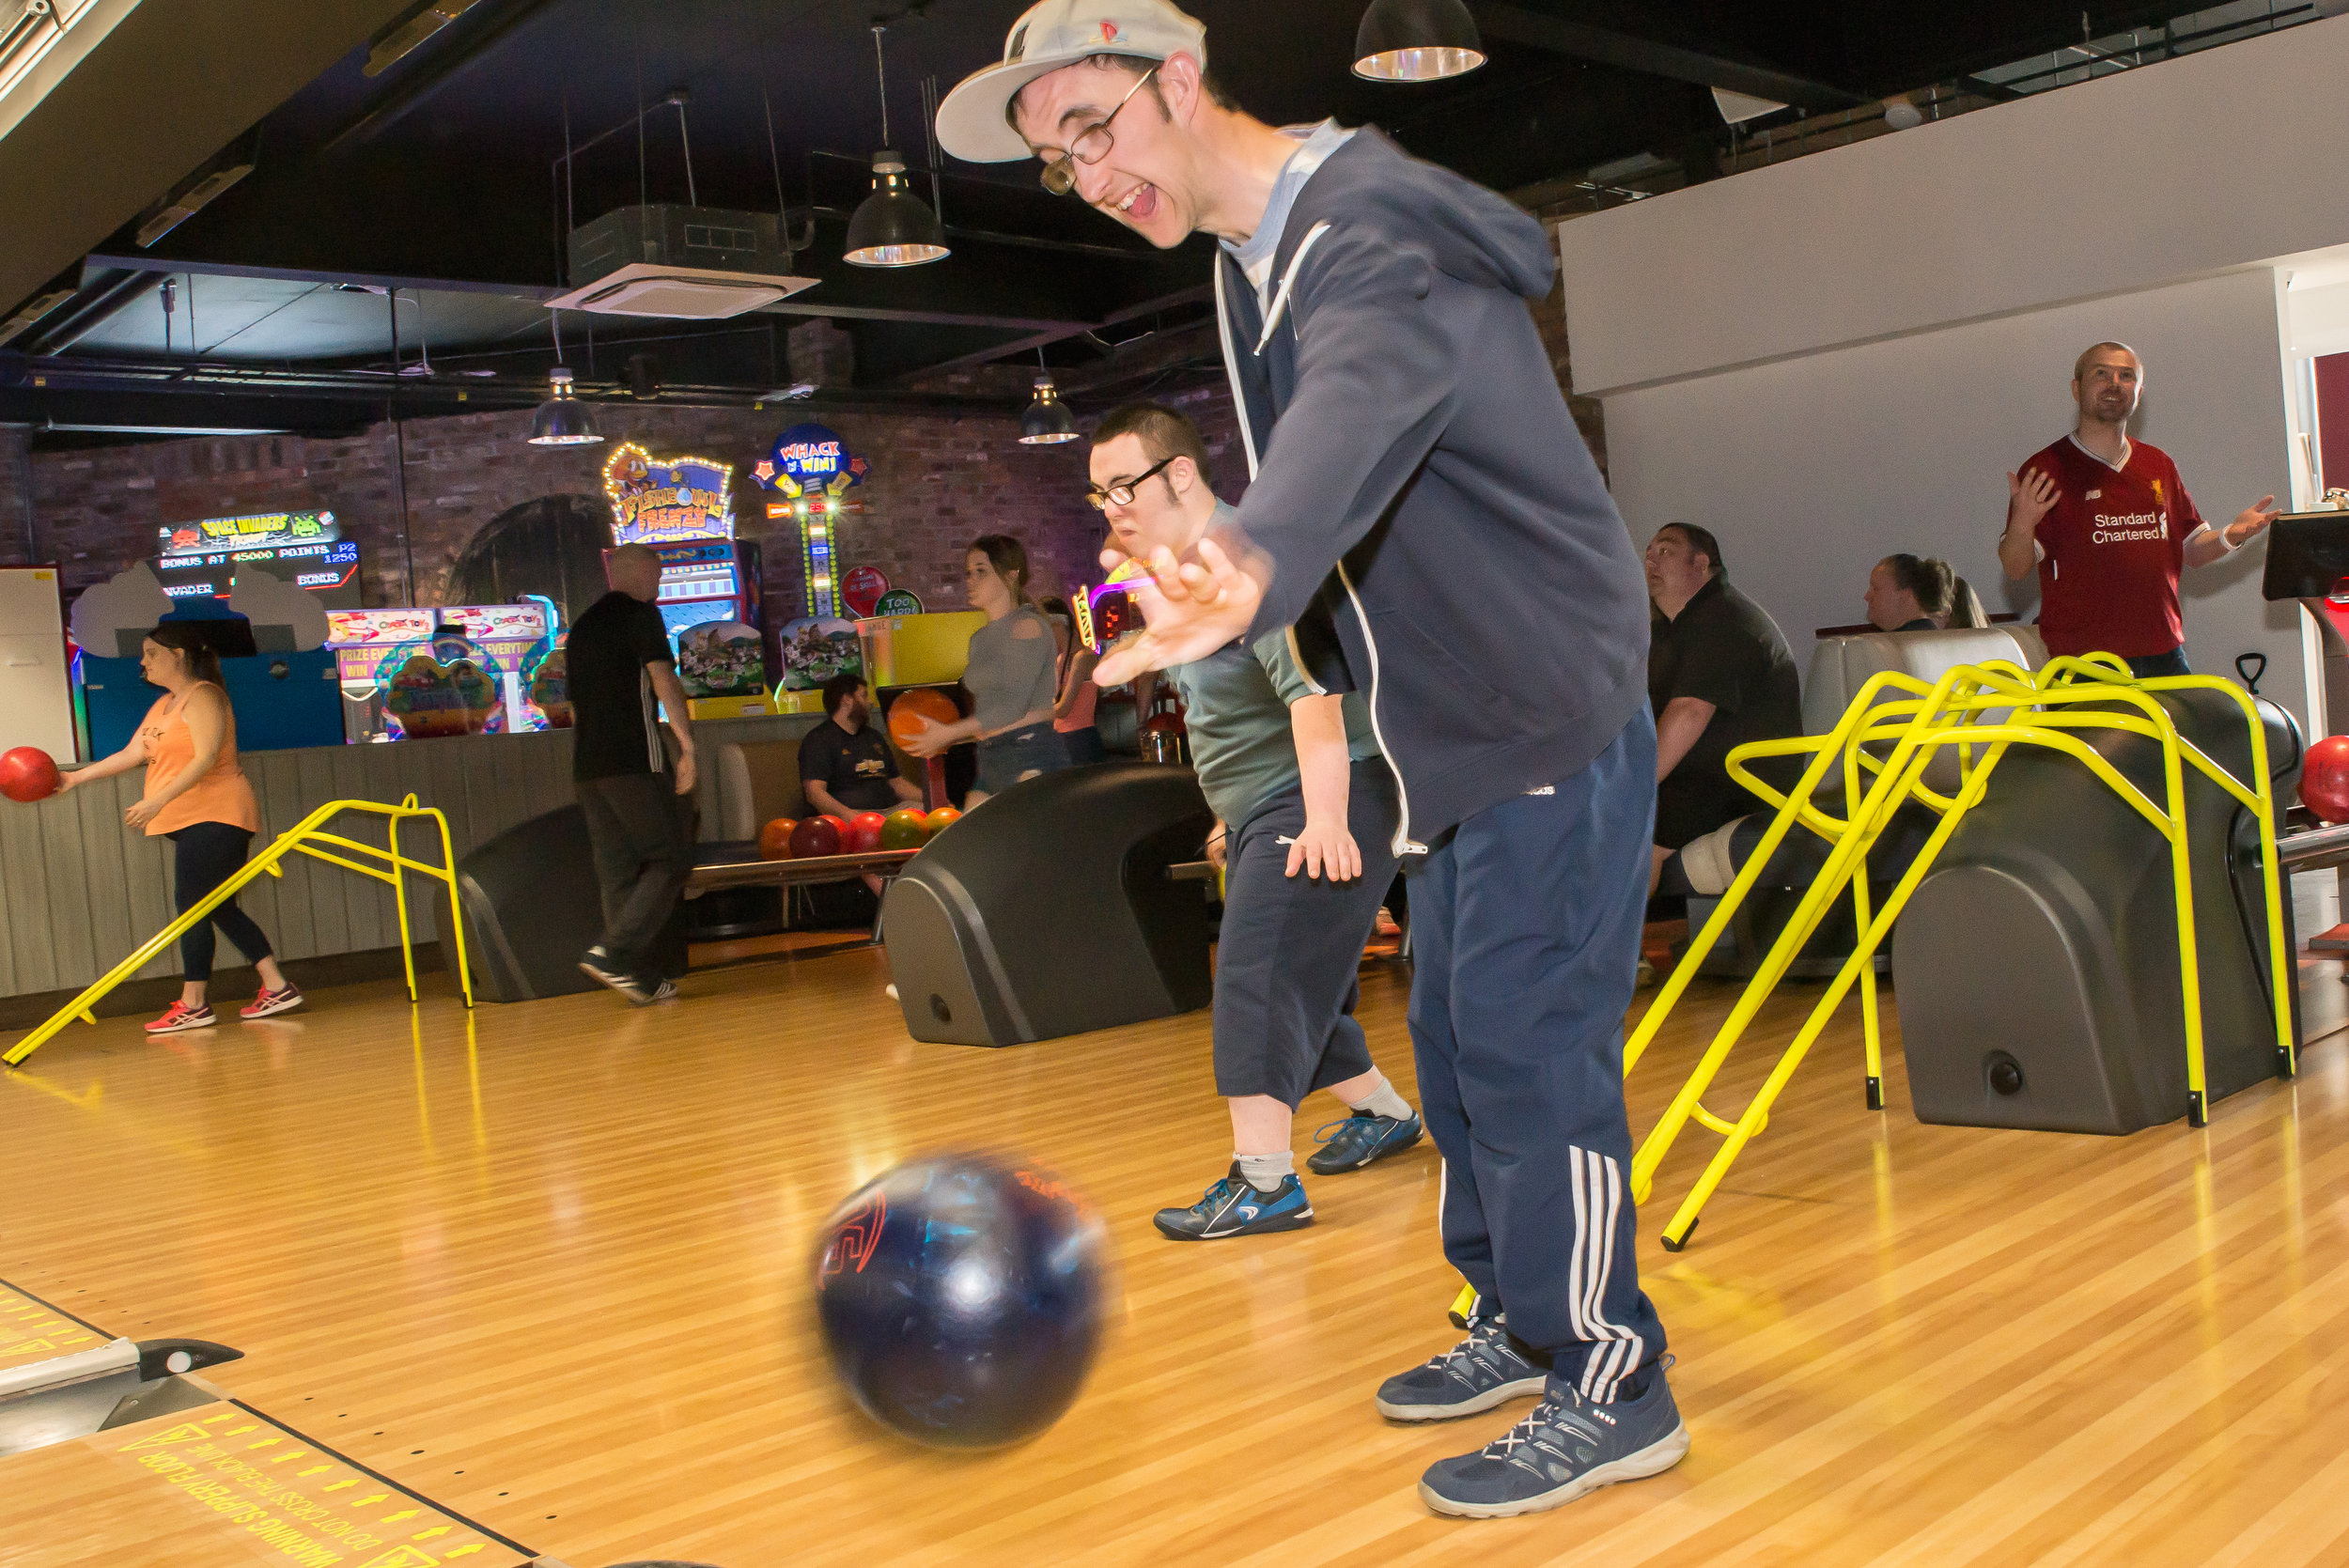 Bowling 26-05-2018 (8 of 25).jpg